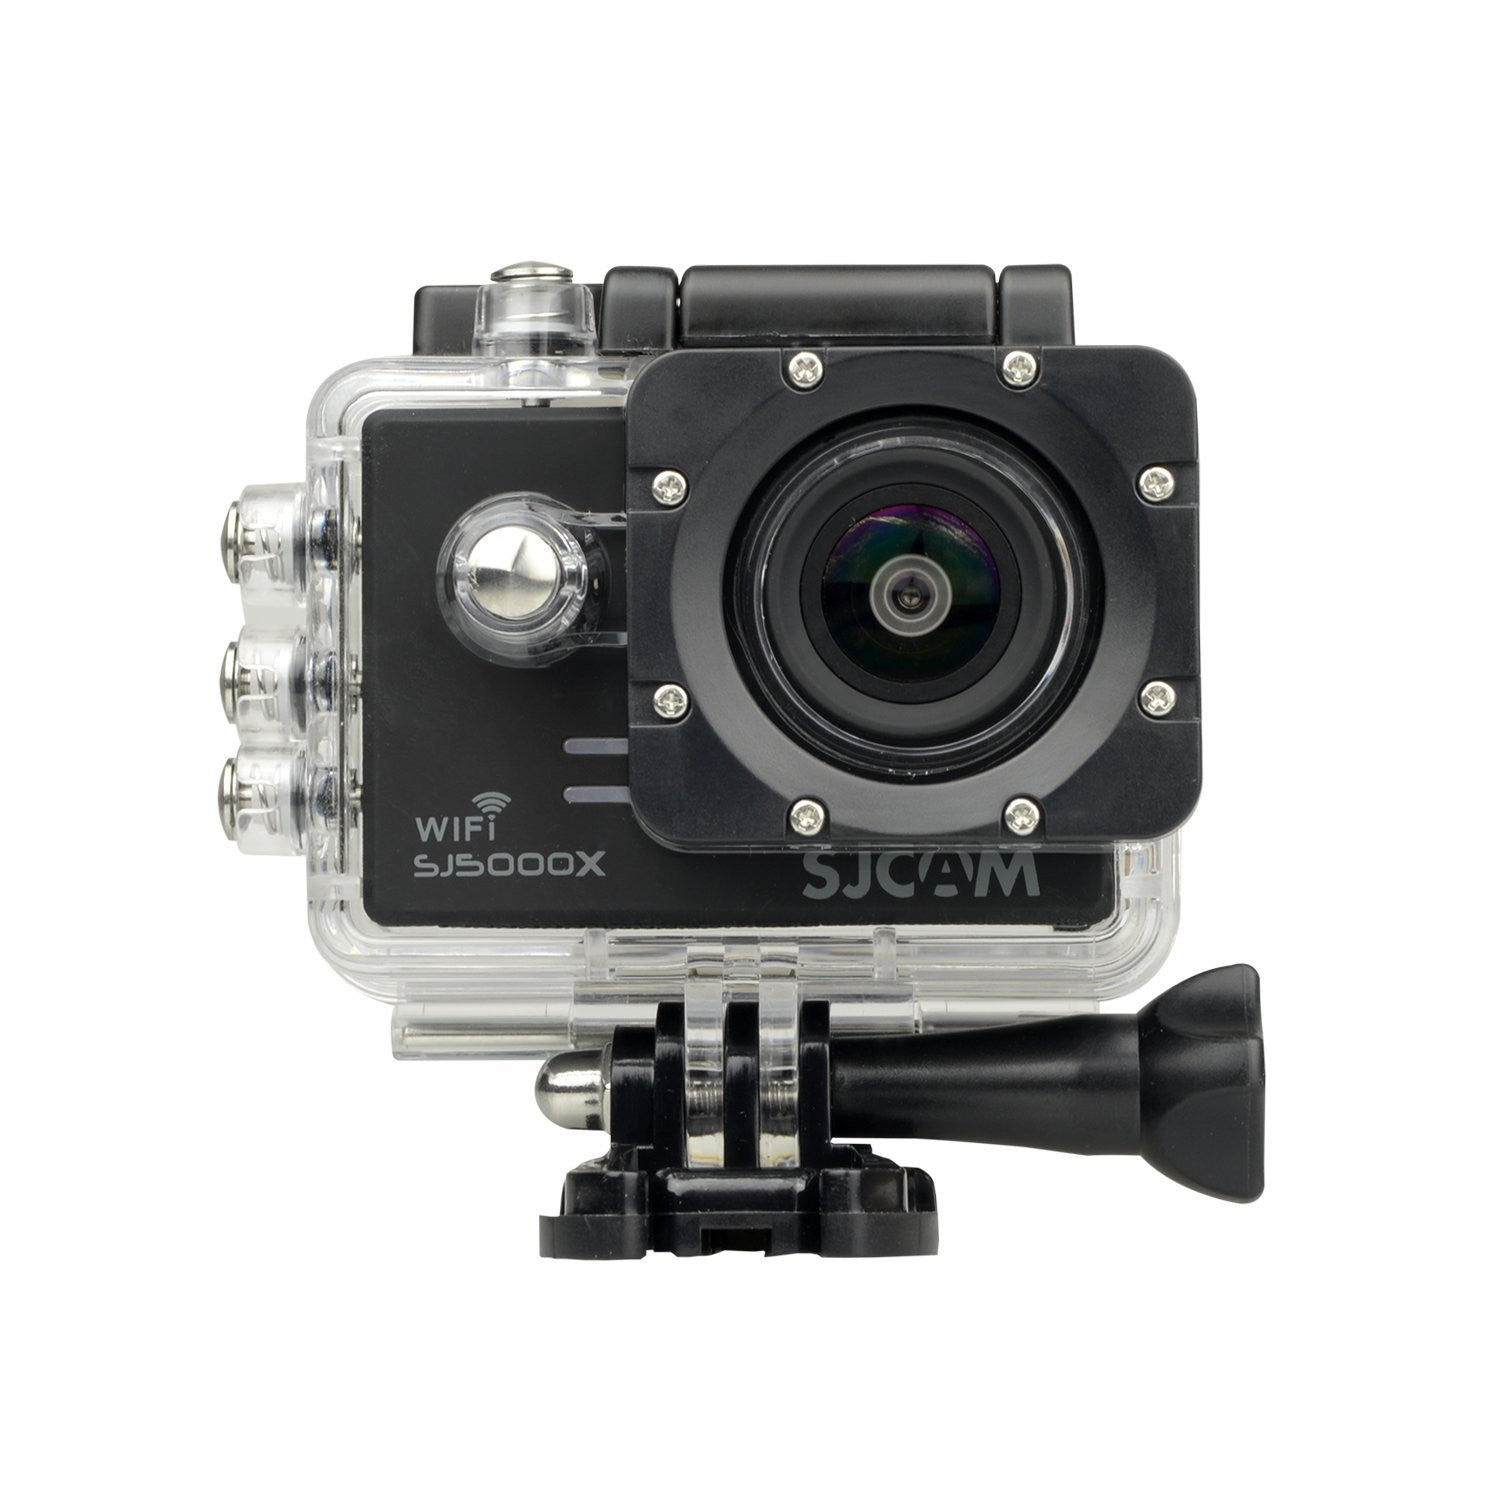 SJCAM SJ5000x Elite 4K WiFi Action Camera With Sony IMX078 |Mobilegear